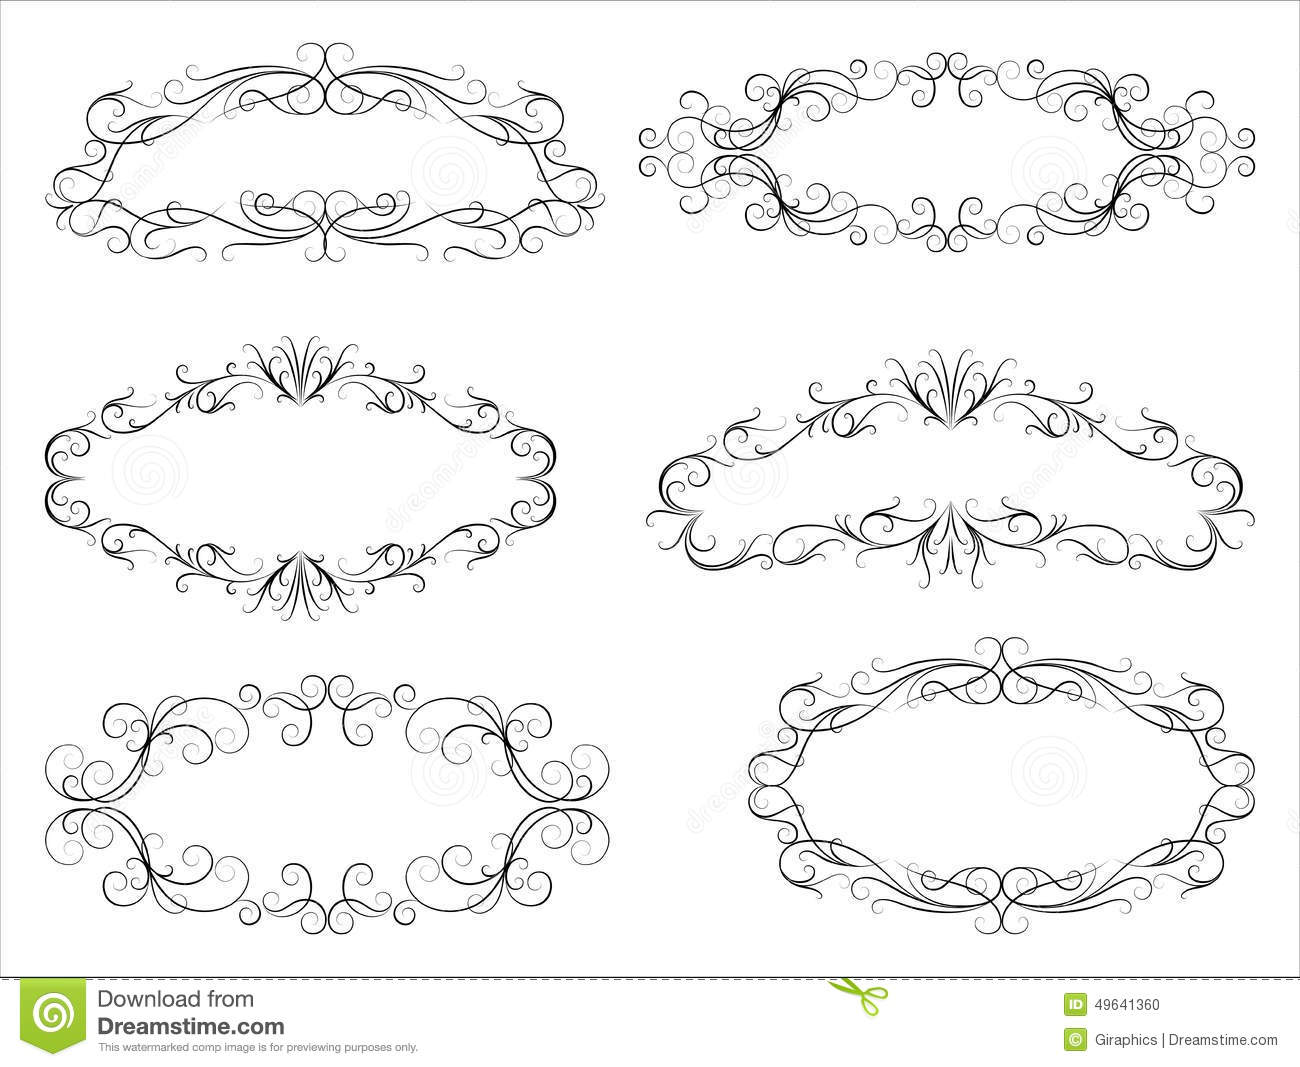 Calligraphic Scroll Frames stock vector. Illustration of certificate ...